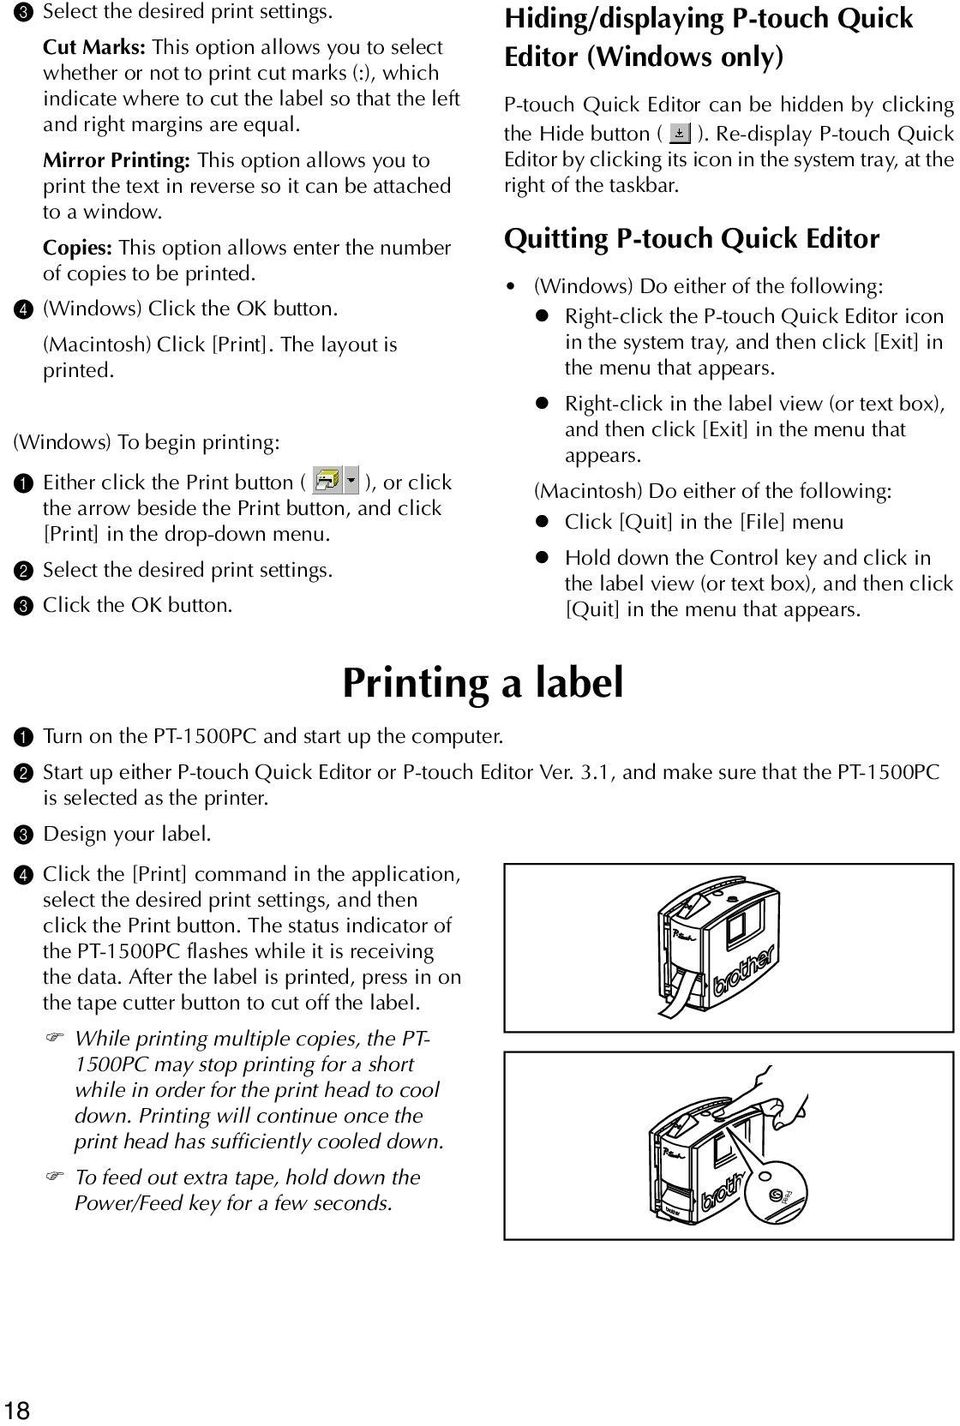 Mirror Printing: This option allows you to print the text in reverse so it can be attached to a window. Copies: This option allows enter the number of copies to be printed.